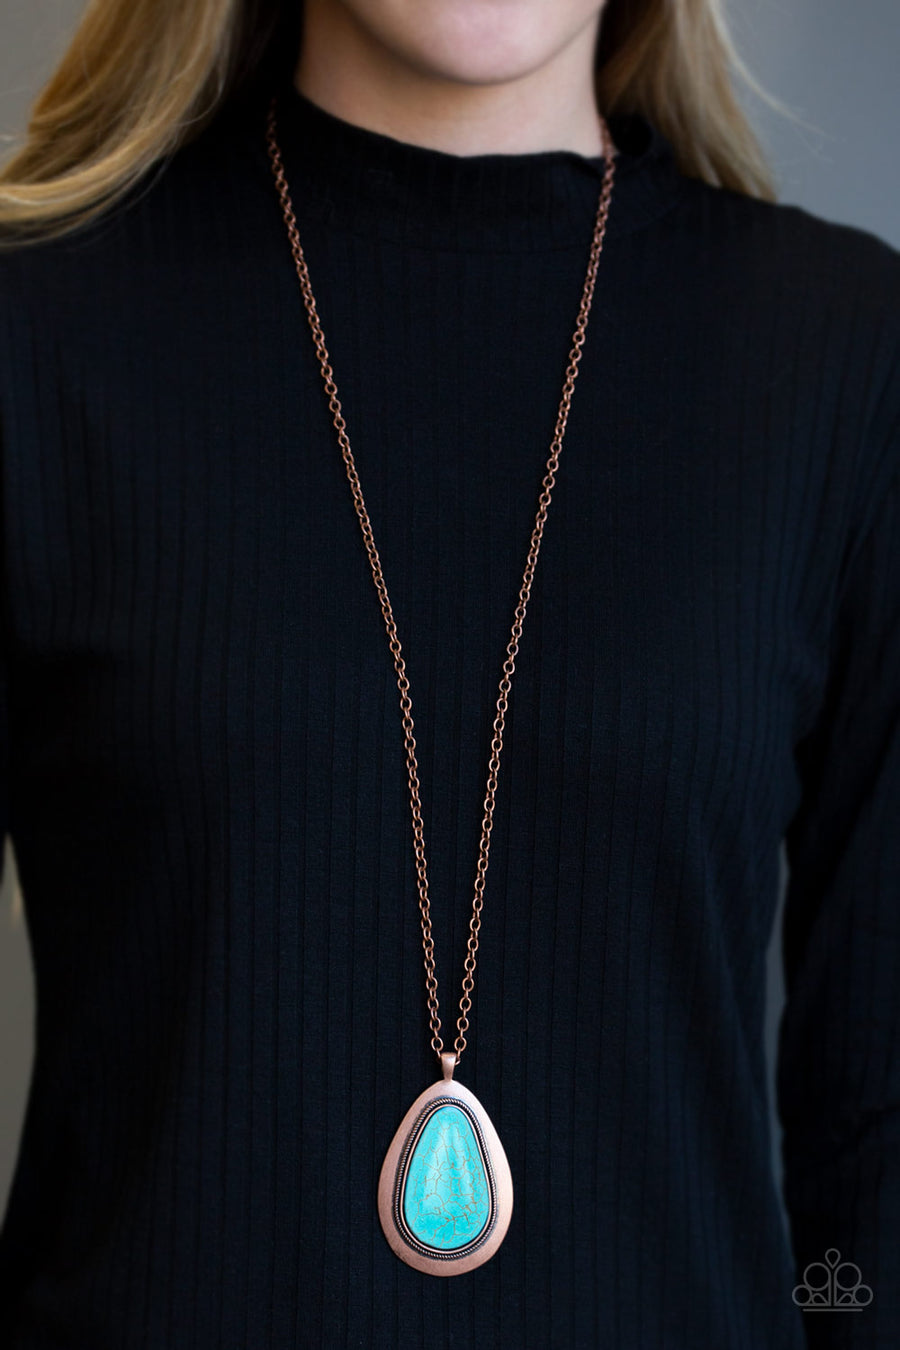 BADLAND To The Bone - Copper Necklace